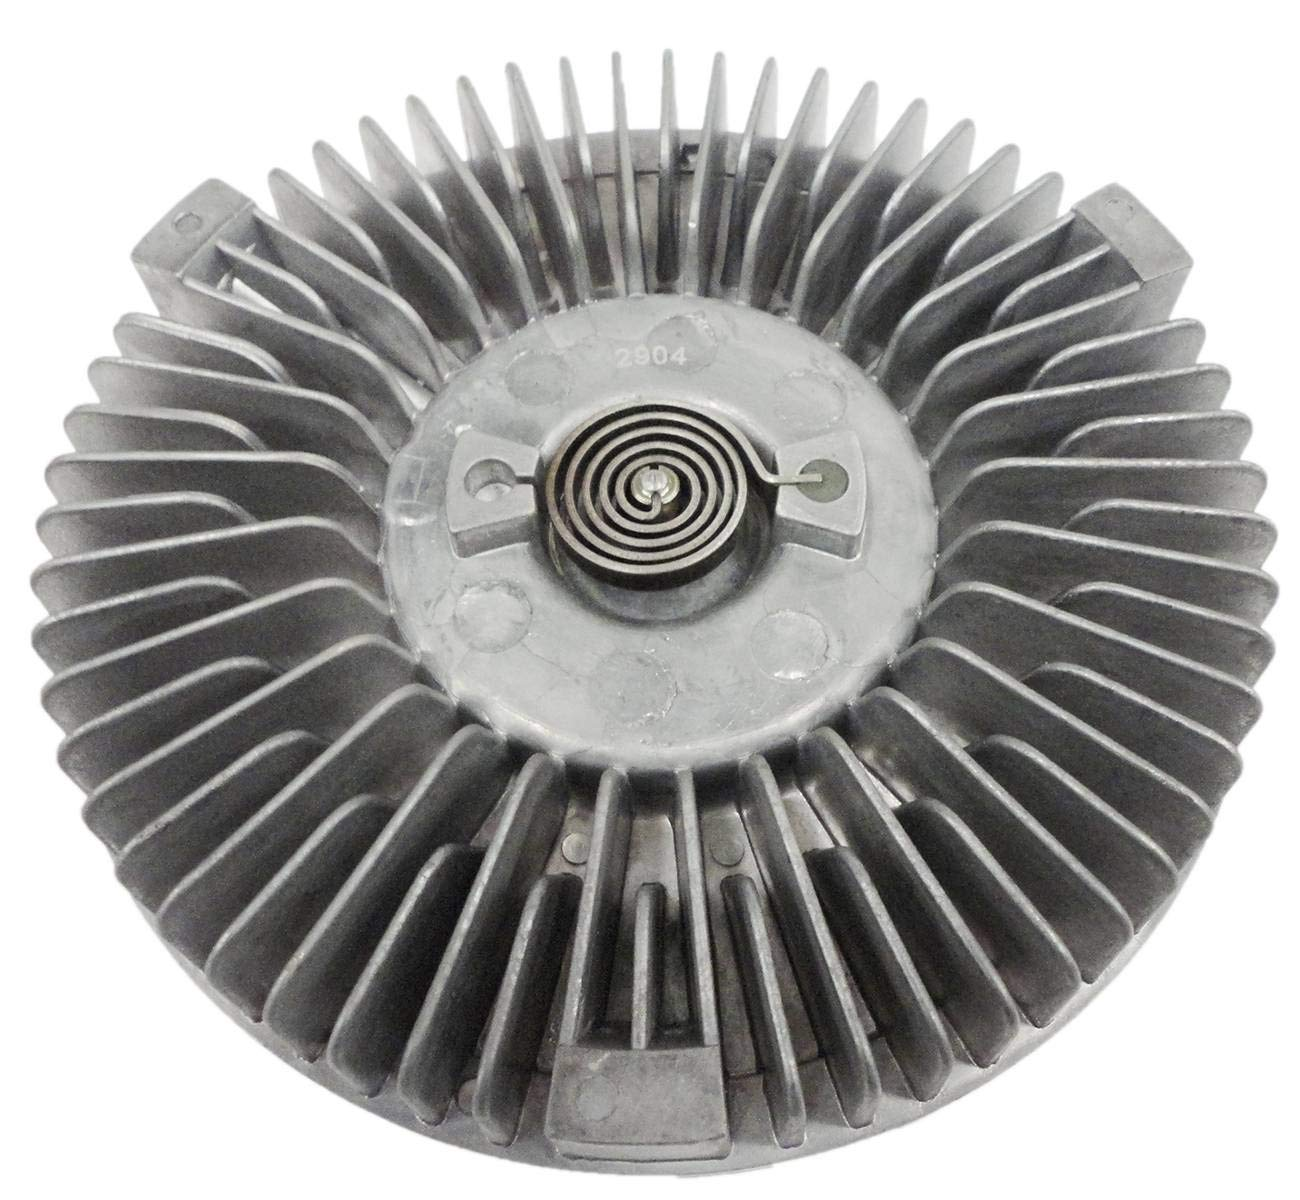 TOPAZ 2904 Engine Cooling Thermal Fan Clutch for Ford Ranger 03-04 4.0L V6